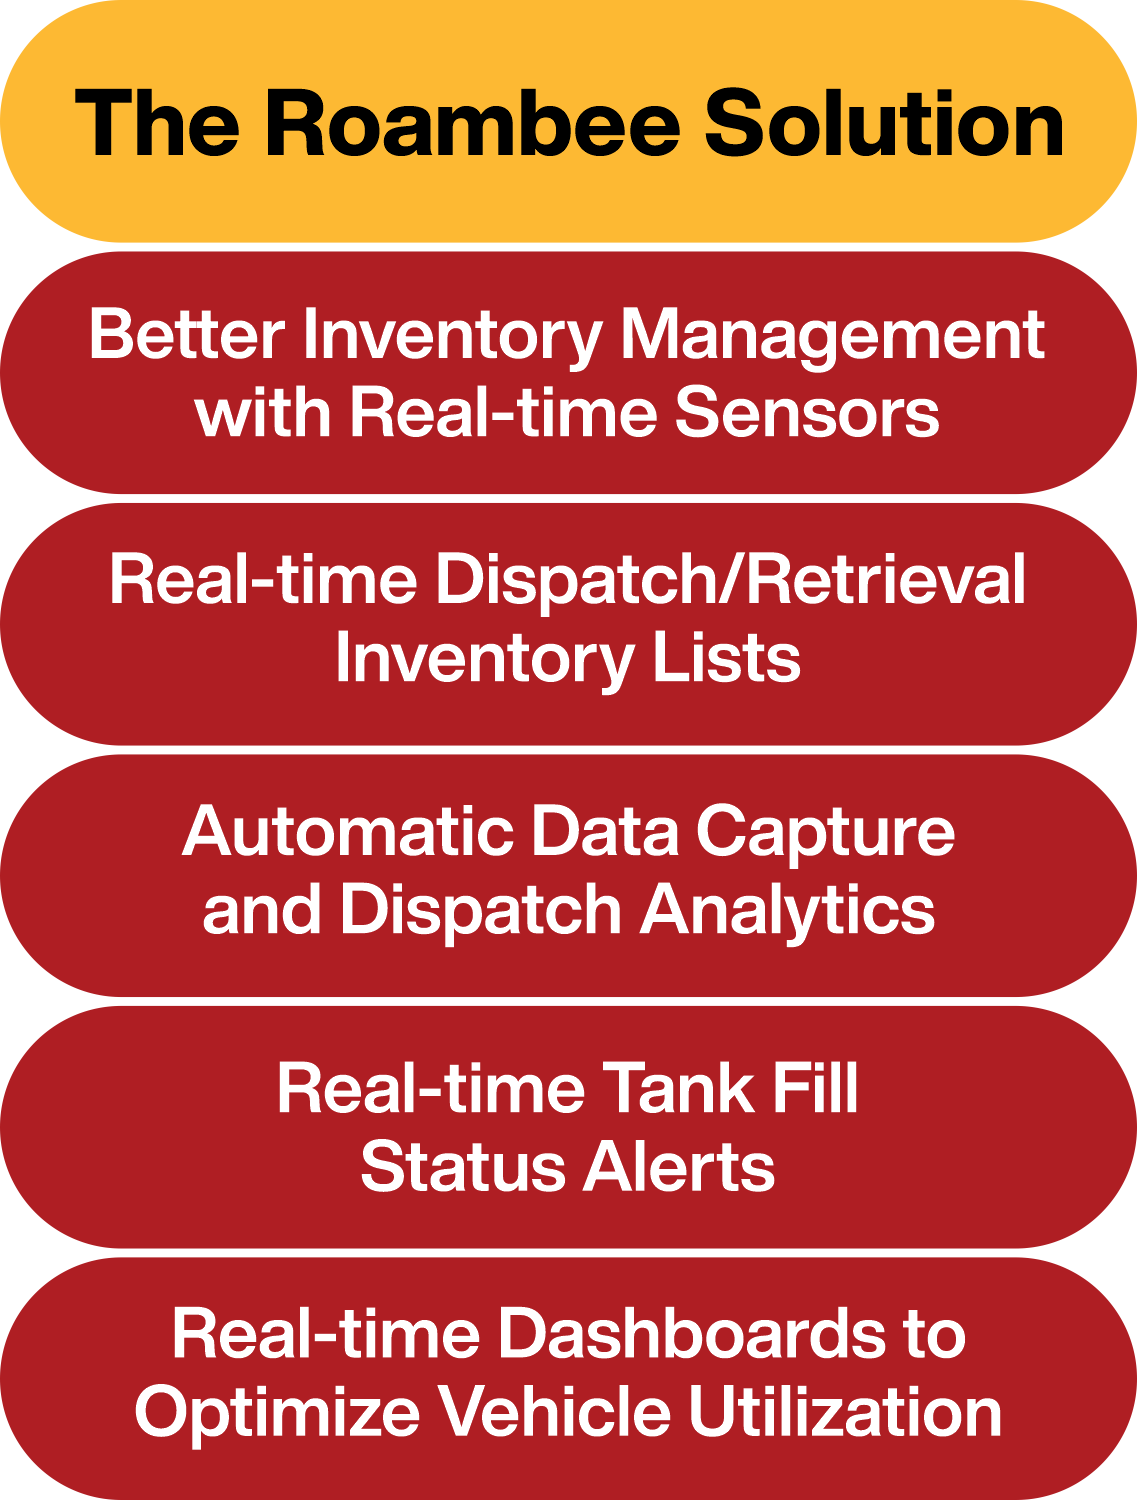 Solutions to inventory tracking challenges in chemical industy